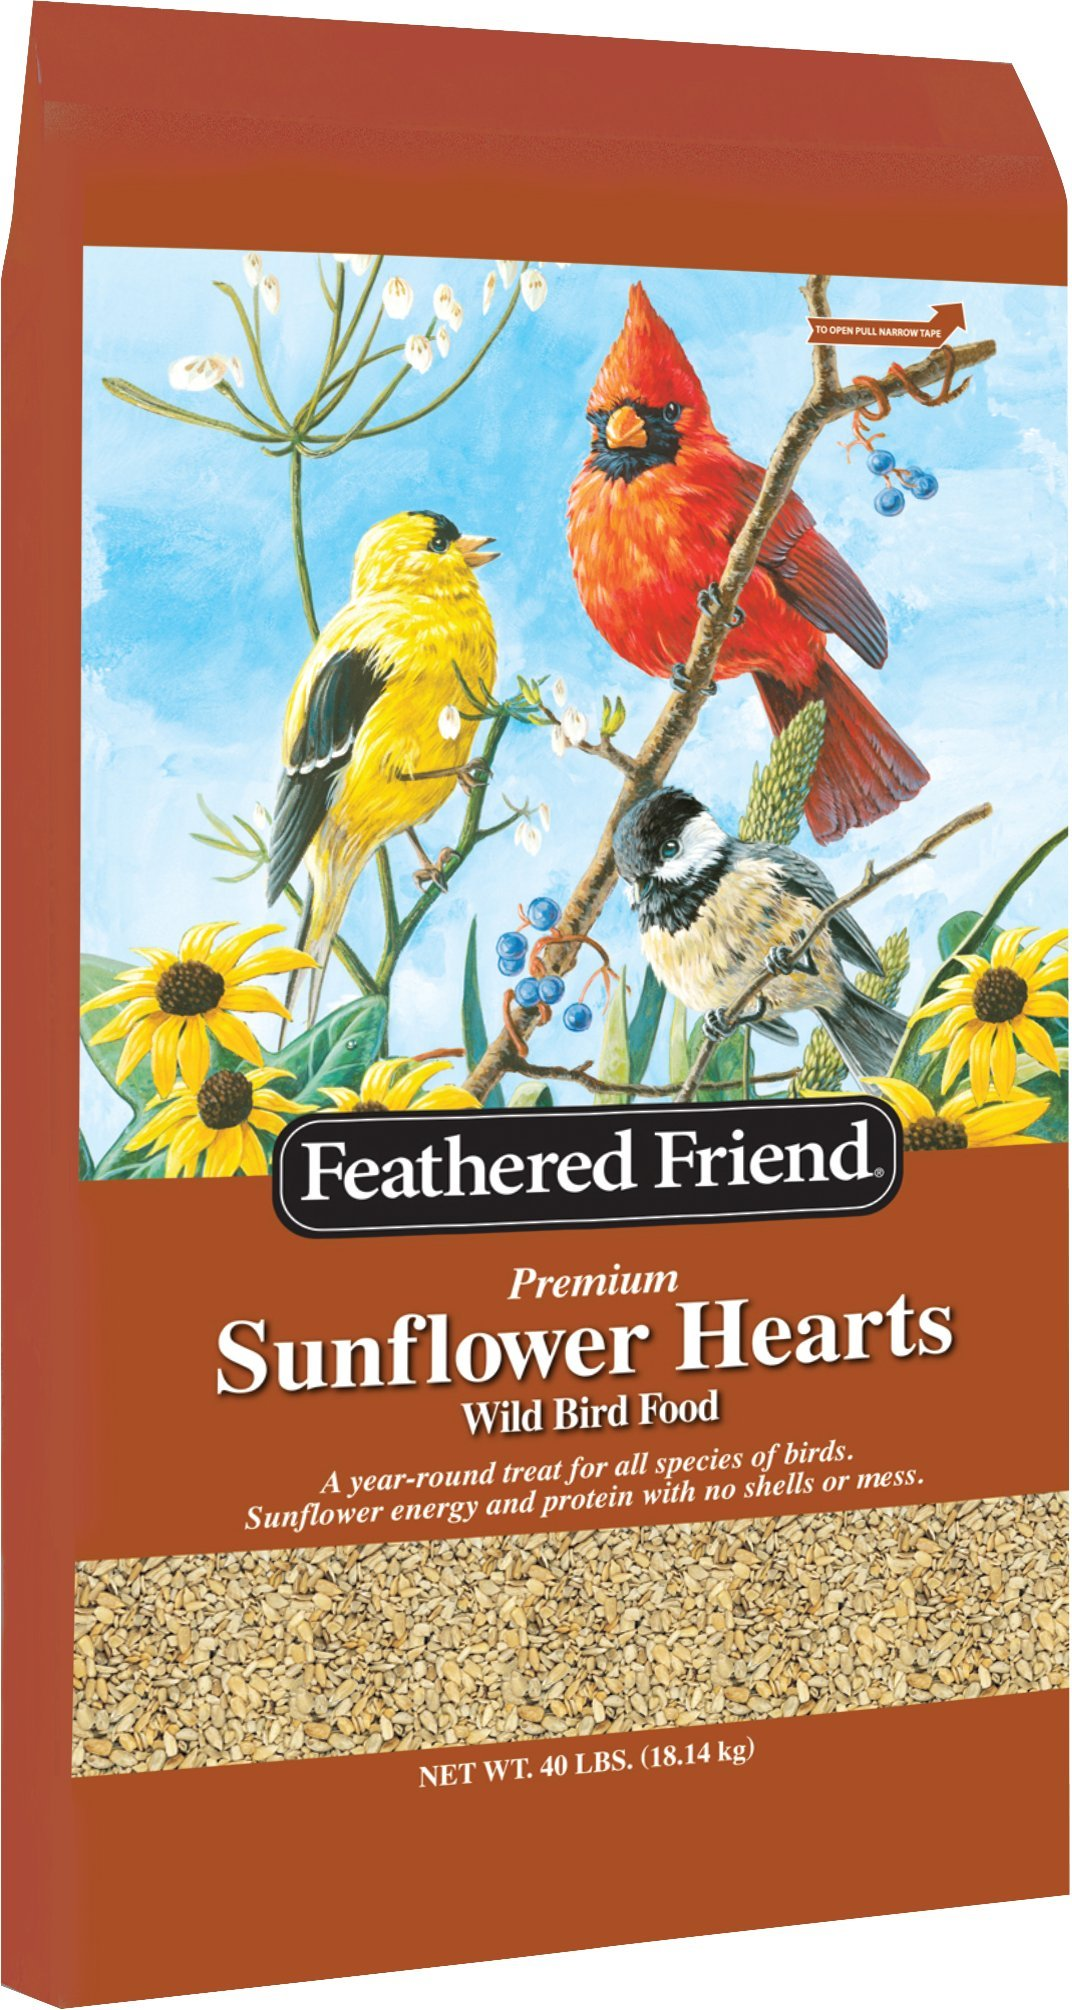 Feathered Friend Sunflower Hearts Wild Bird Seed 40 Pounds by Feathered Friend